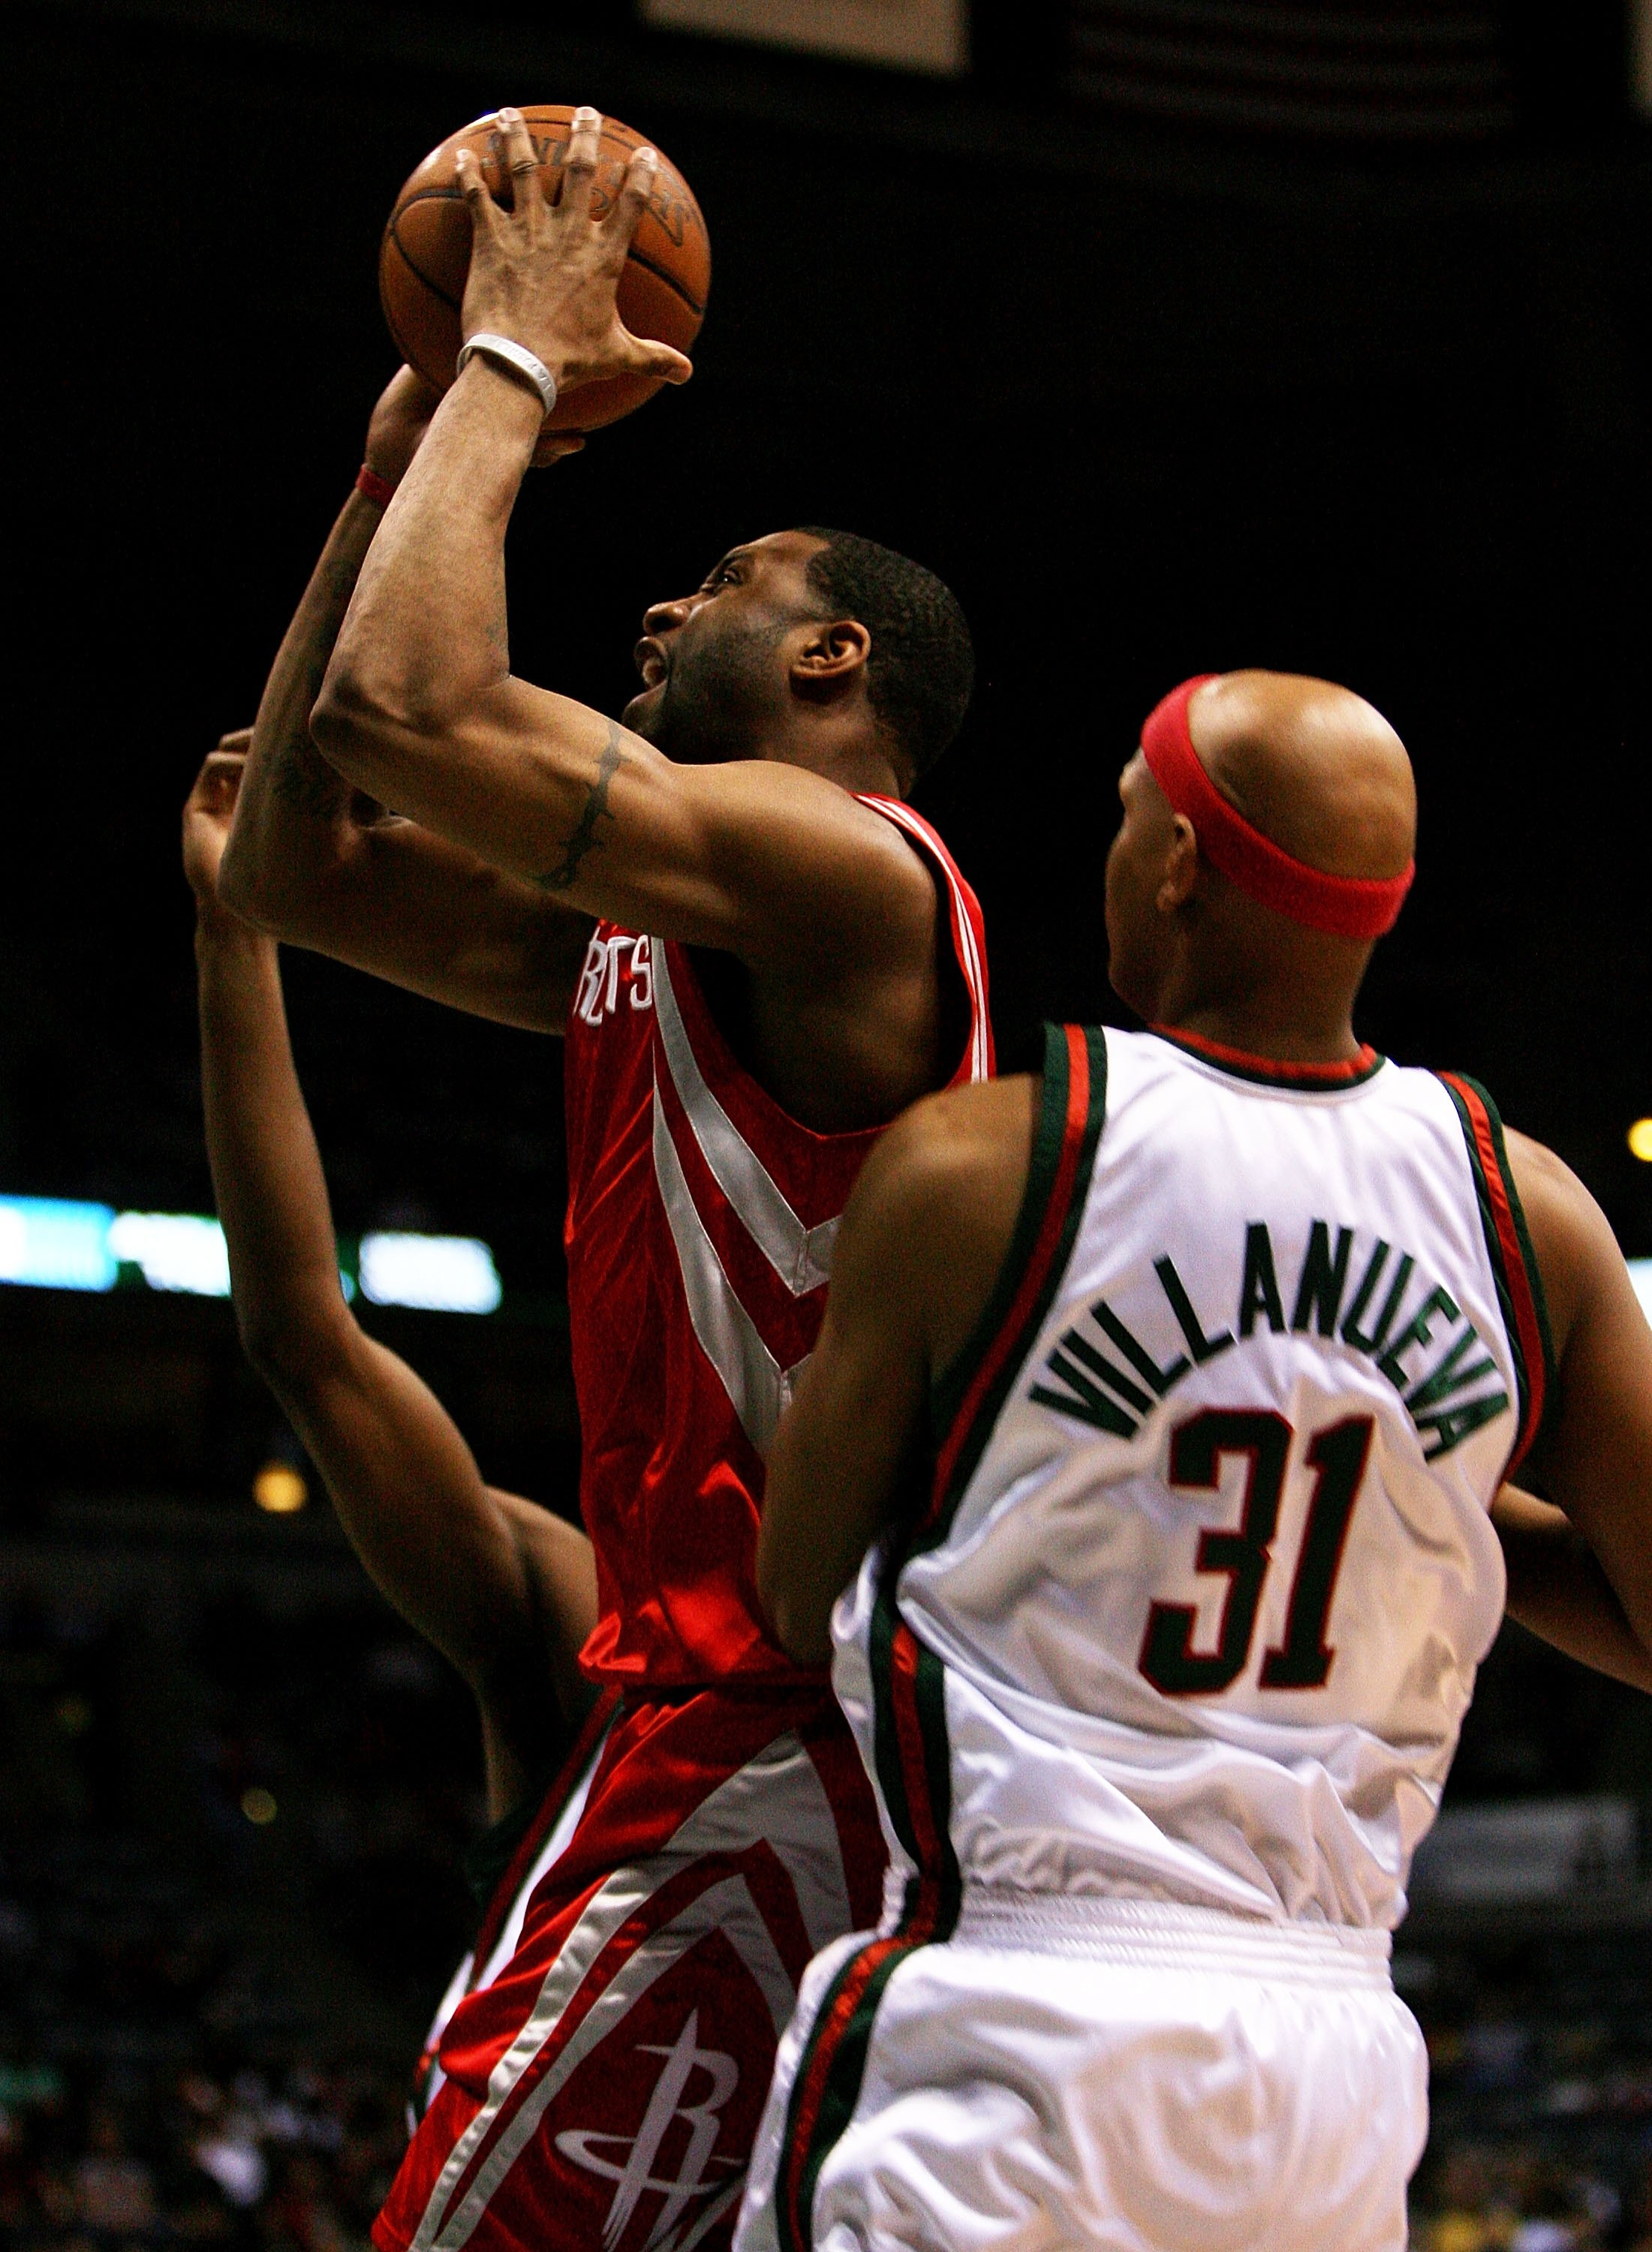 MILWAUKEE - FEBRUARY 09: Tracy McGrady #1 of the Houston Rockets drives past Charlie Villanueva #31 of the Milwaukee Bucks on February 9, 2009 at the Bradley Center in Milwaukee, Wisconsin. The Bucks defeated the Rockets 124-112. NOTE TO USER: User expres